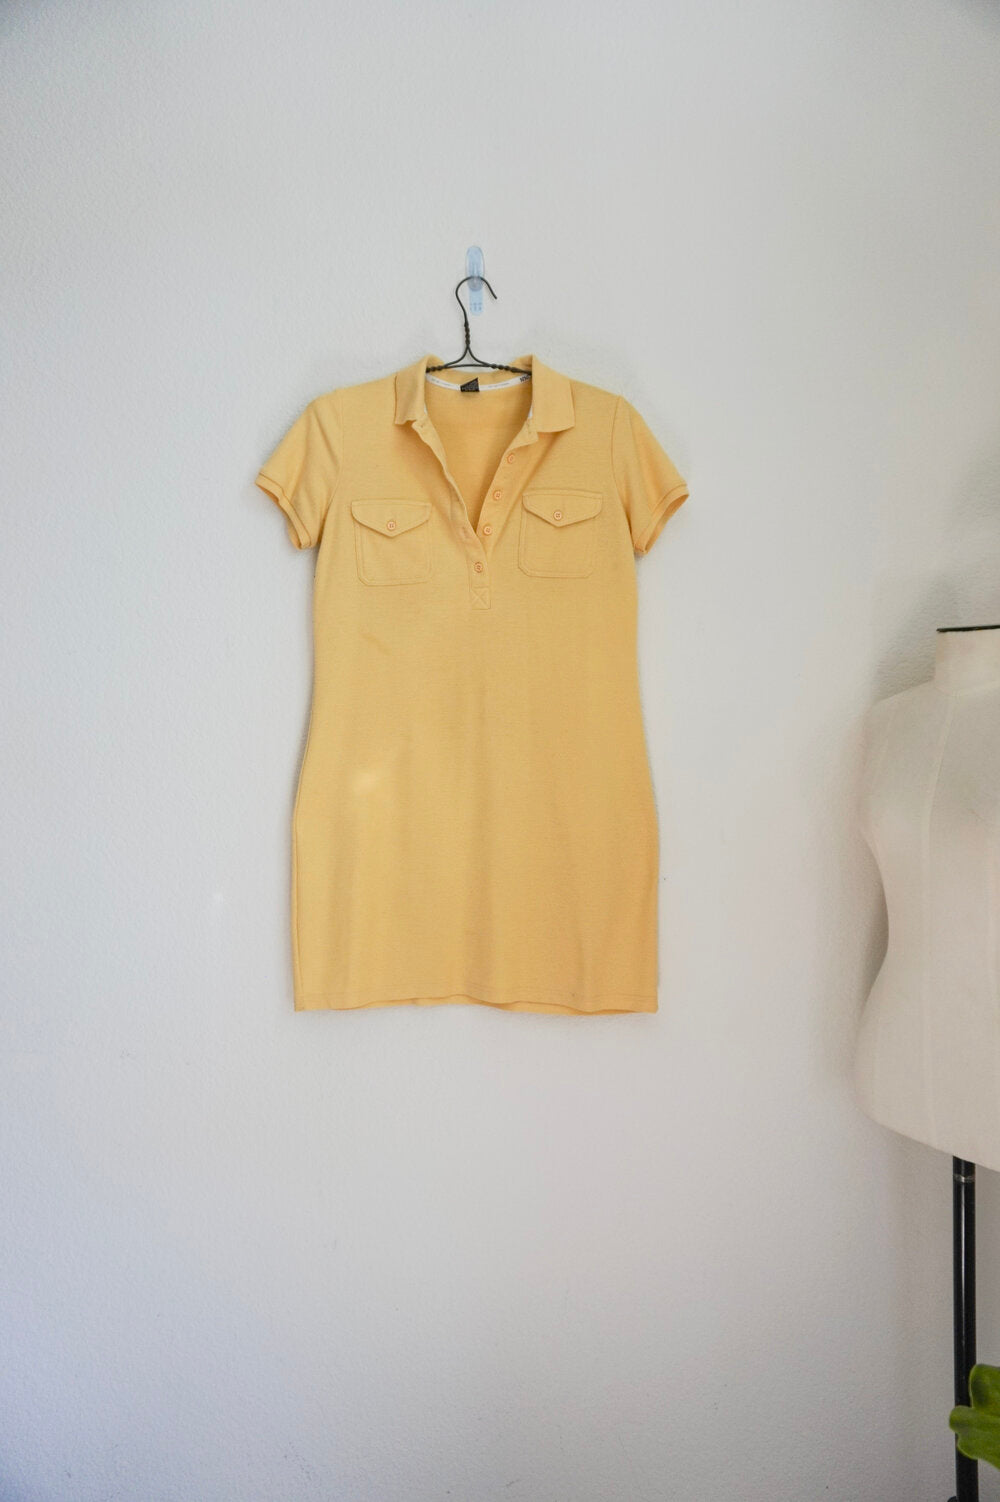 Ny&Co yellow polo tennis t-shirt casual dress